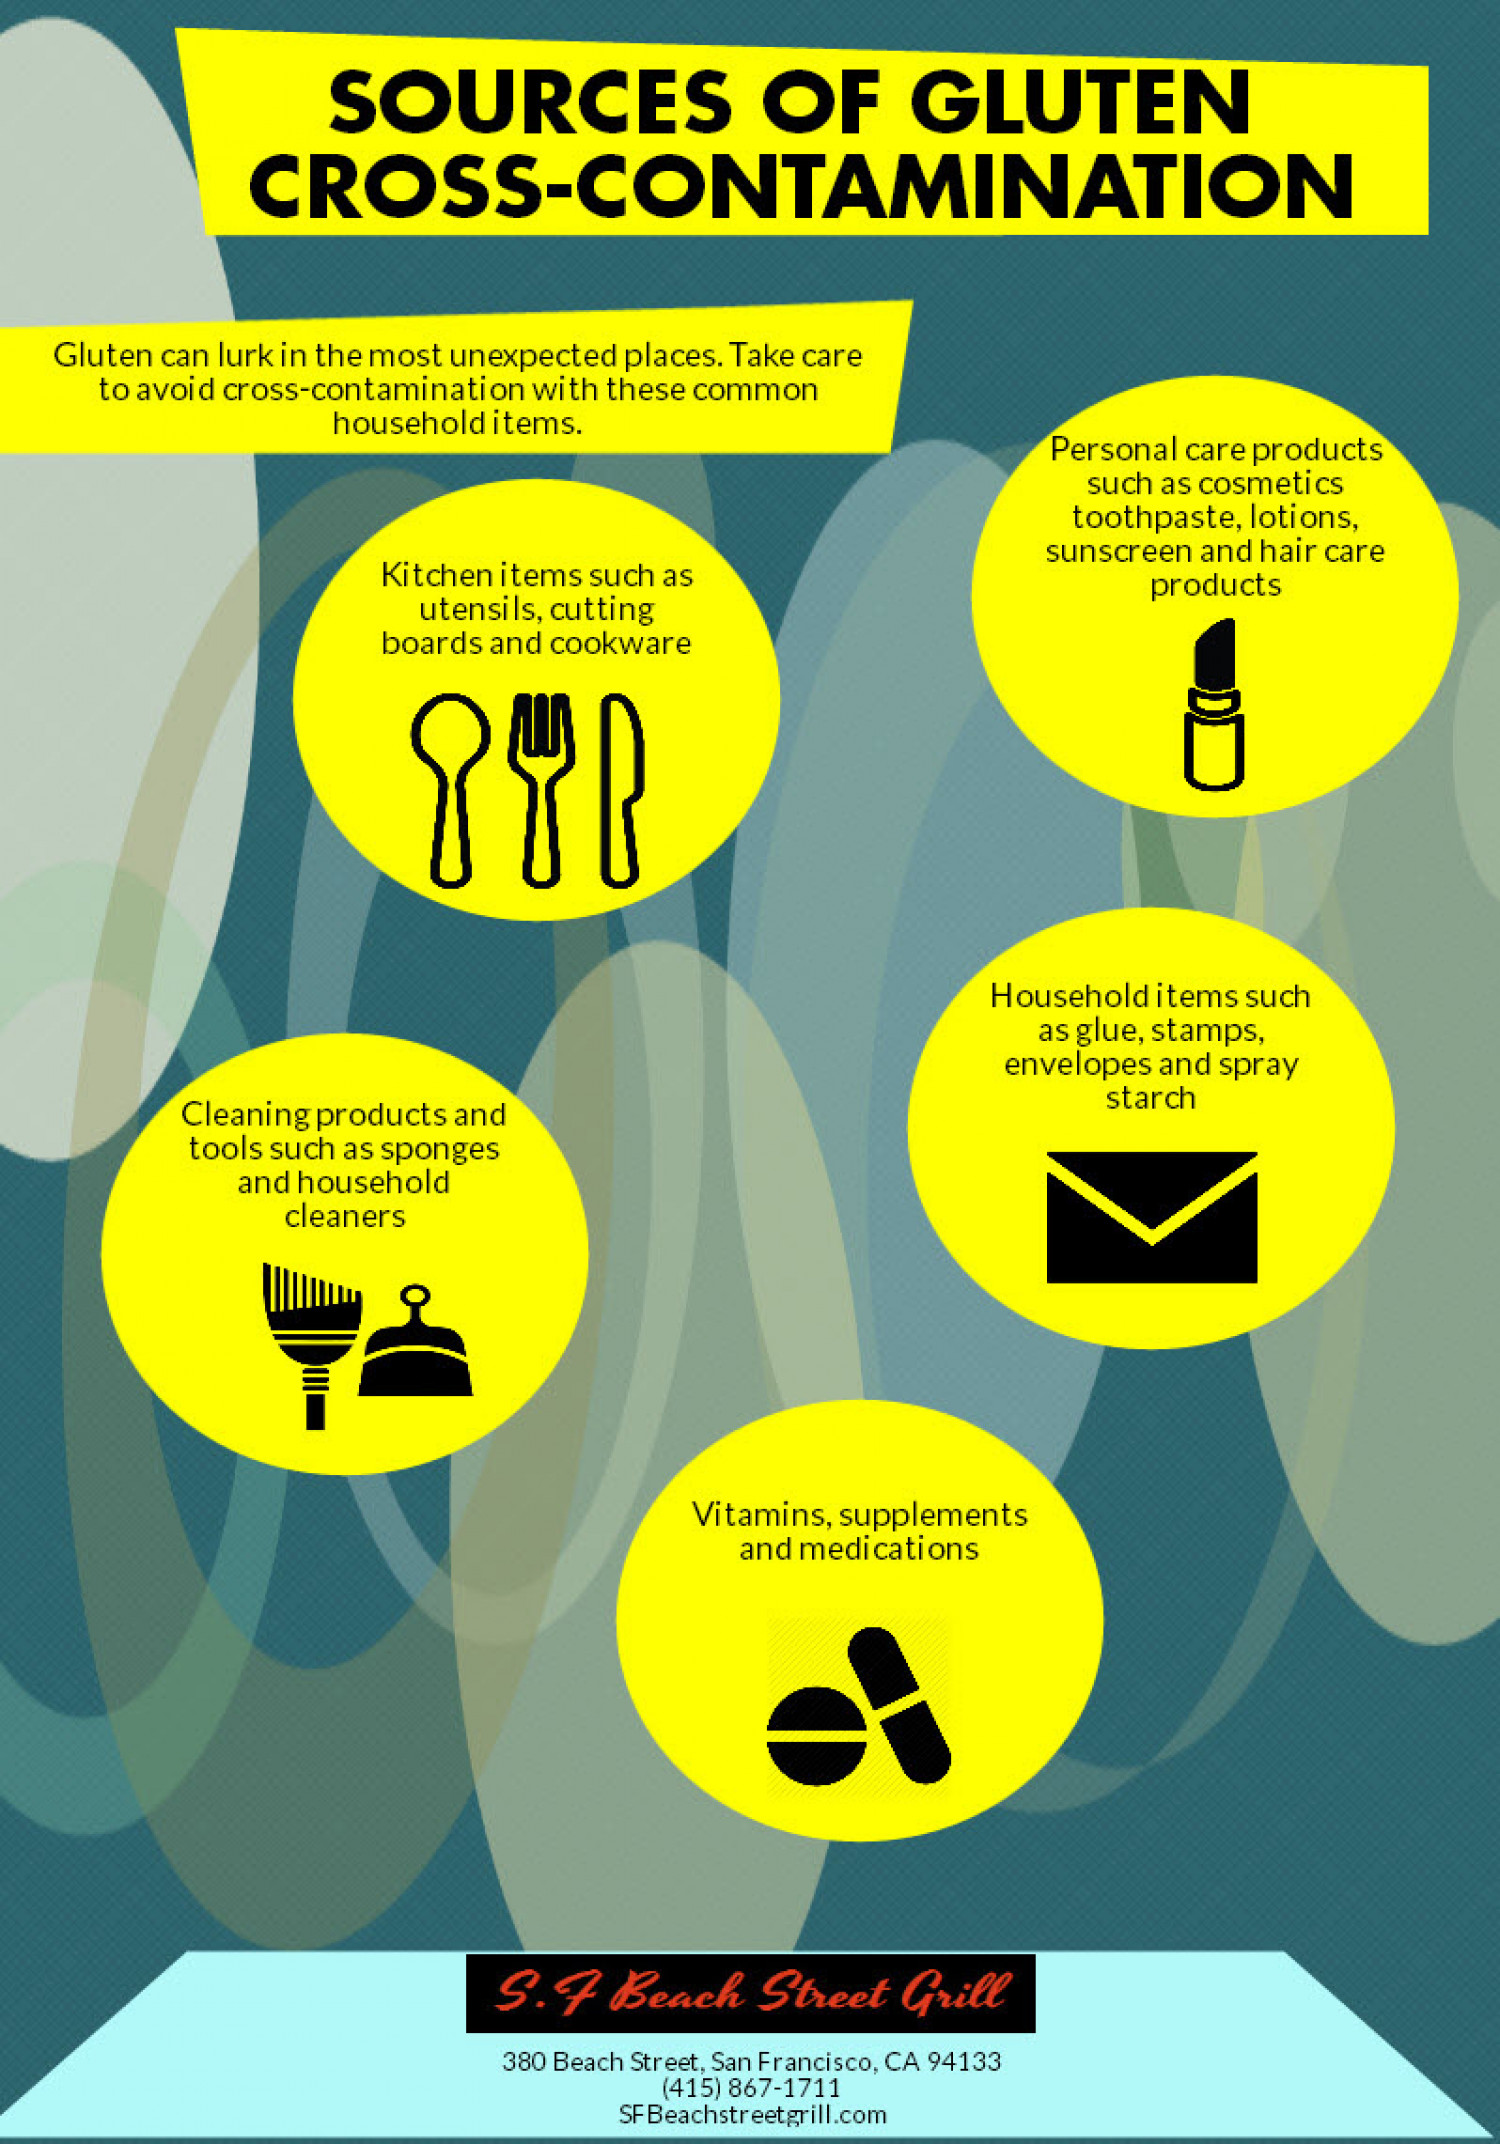 Sources of Gluten Cross-Contamination Infographic